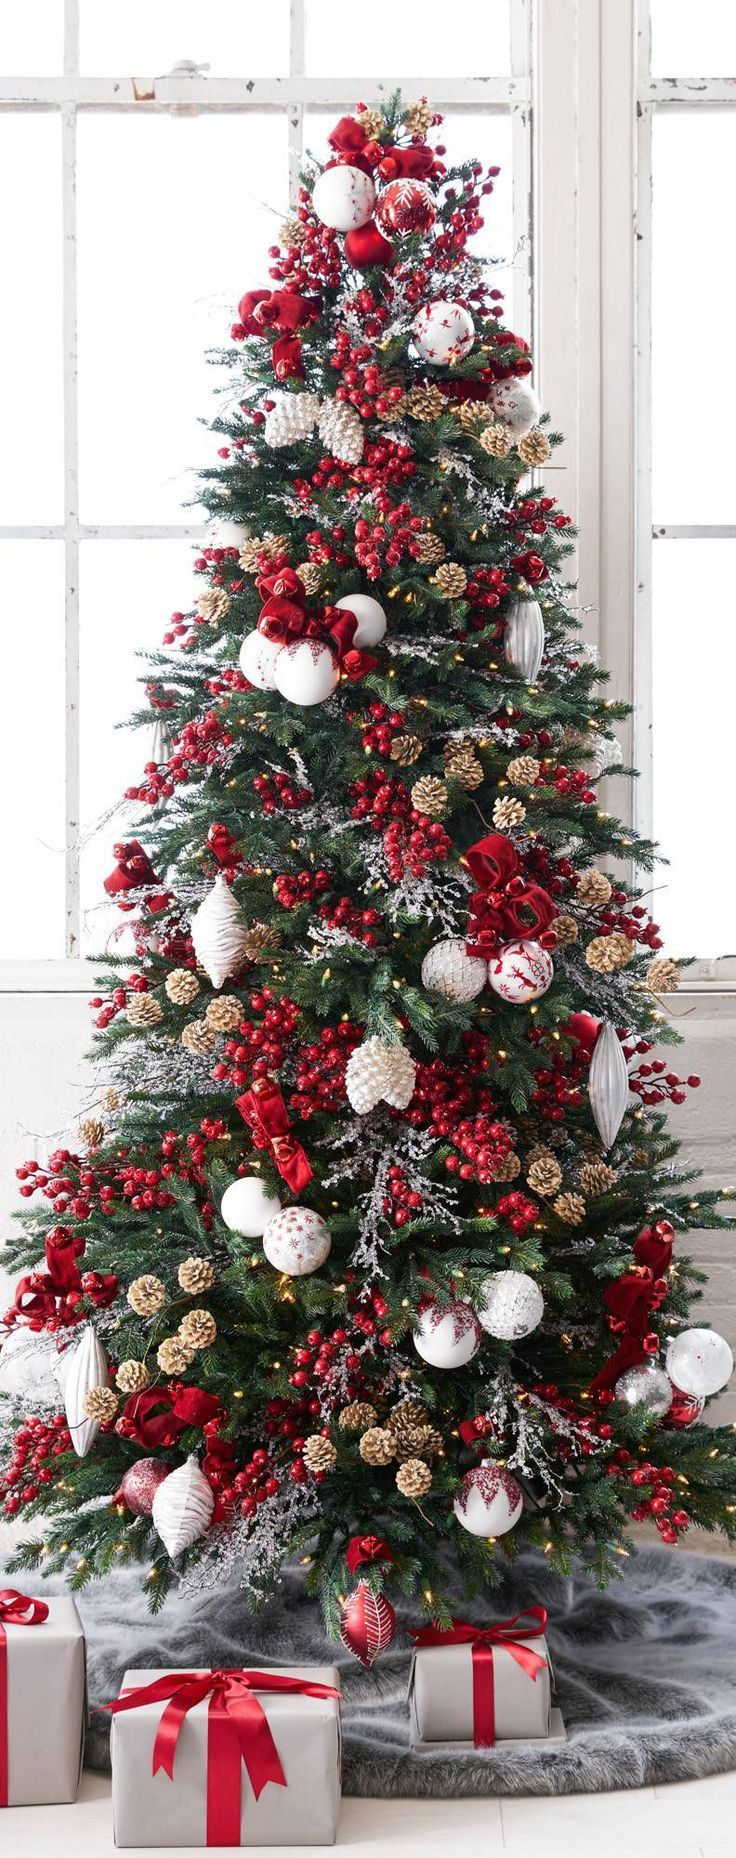 55 Rustic Christmas Decorating Ideas| Country Christmas Decor for 2019 #christmastree